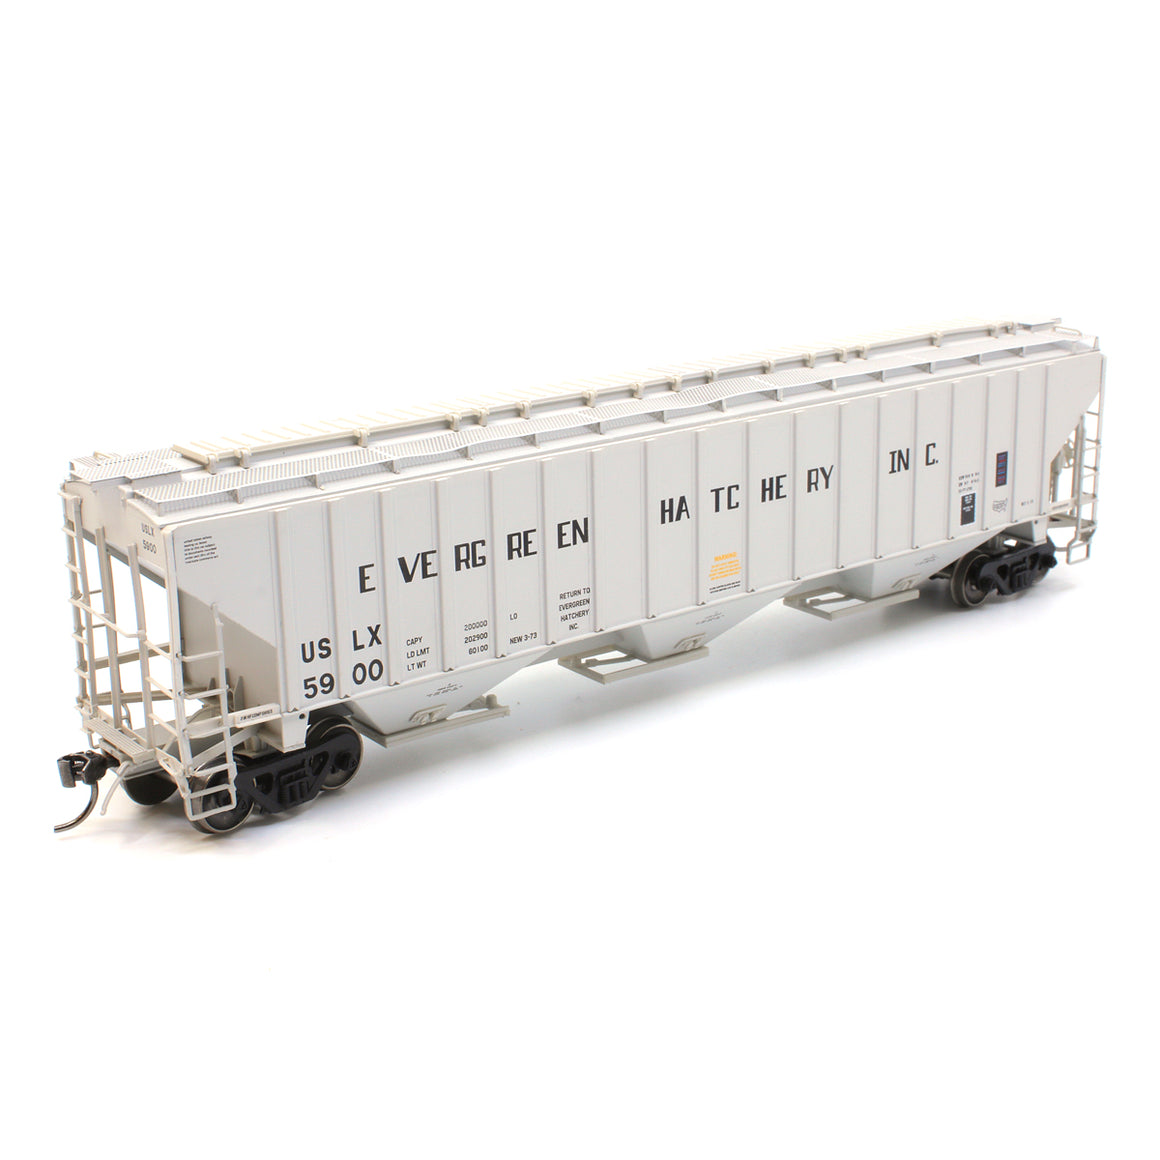 HO Scale: 4750 Cubic Foot 3-Bay Rib-Sided Covered Hopper - Evergreen Fish Hatchery Inc.